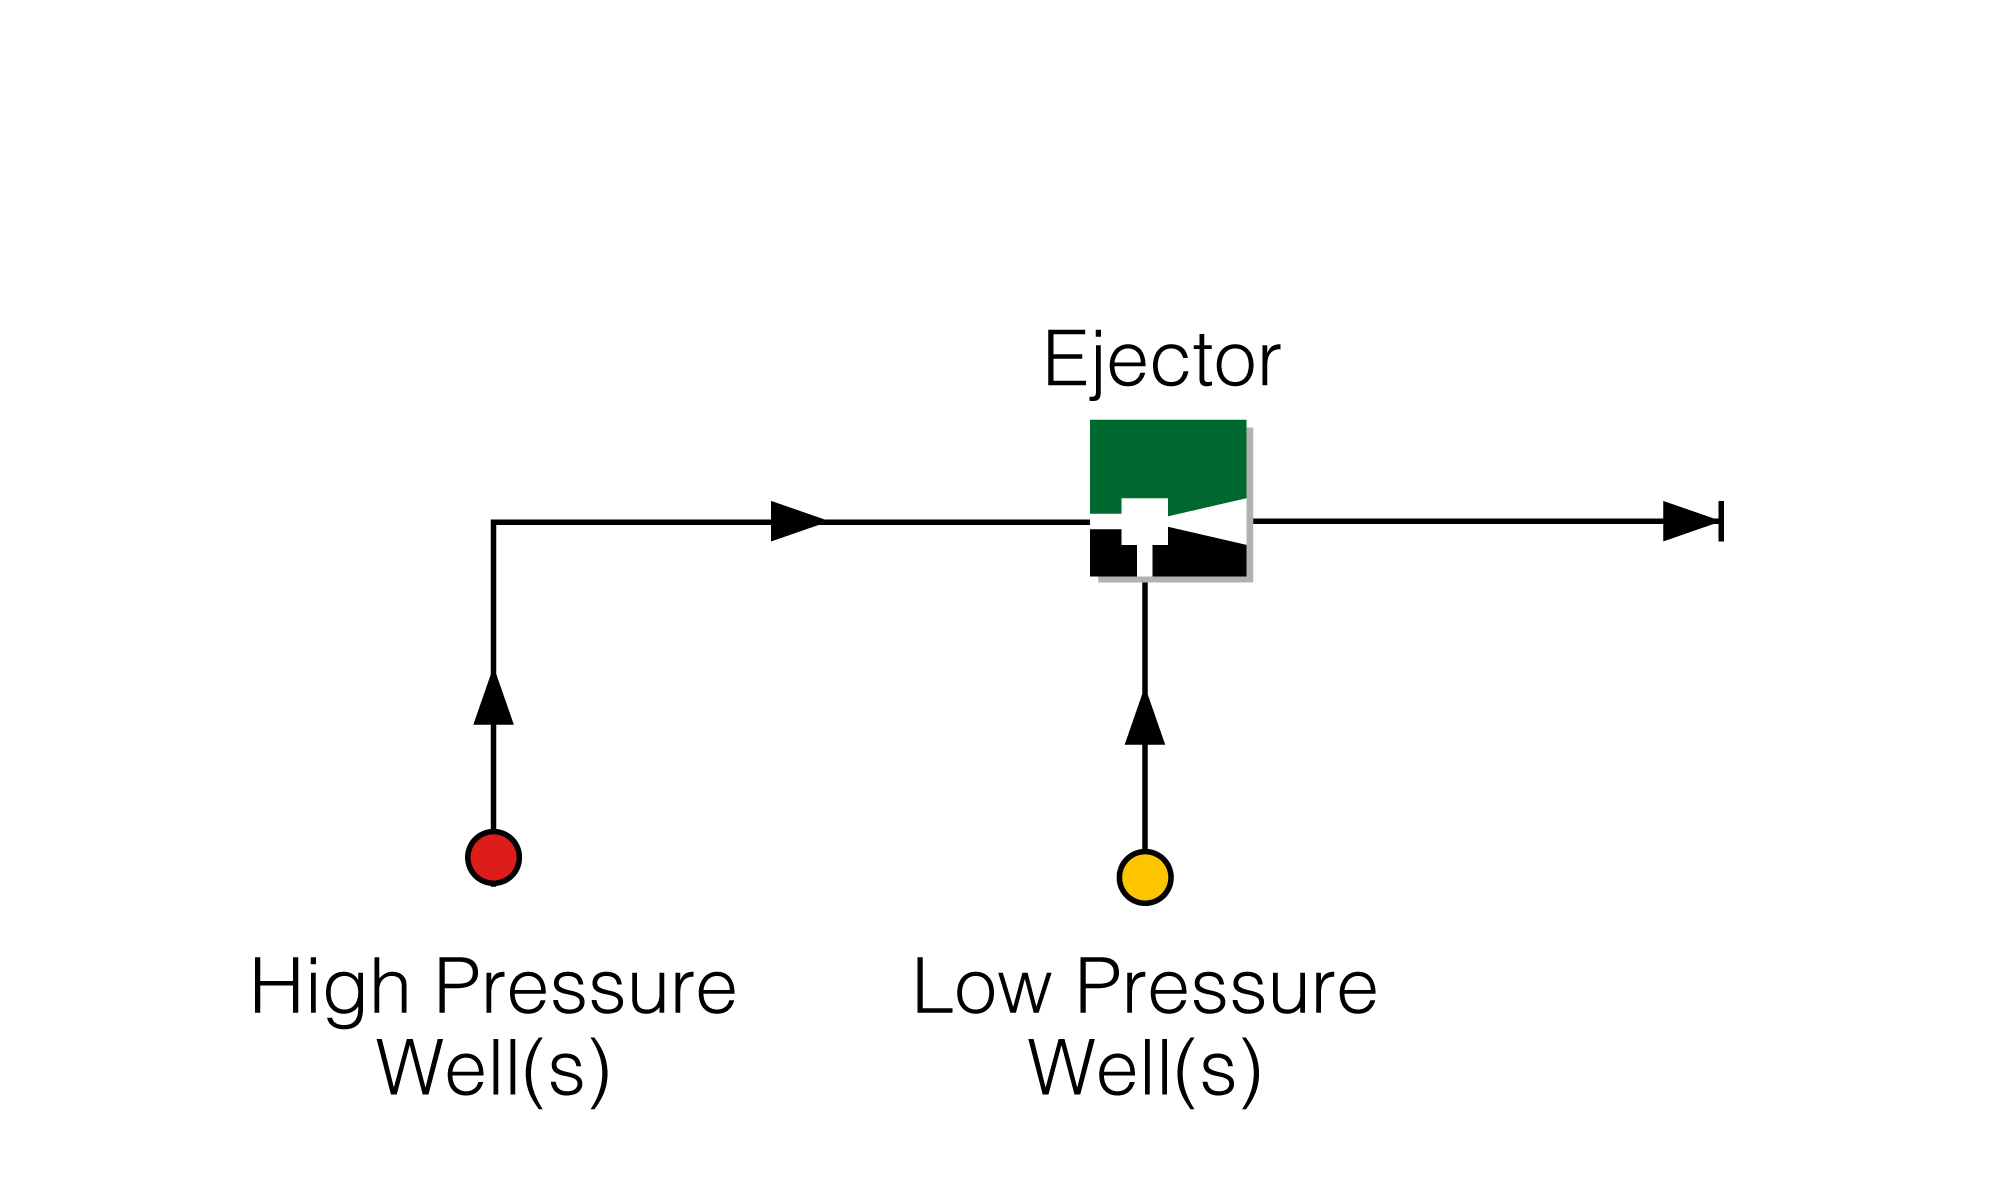 Production Boosting Ejector with Motive HP Well